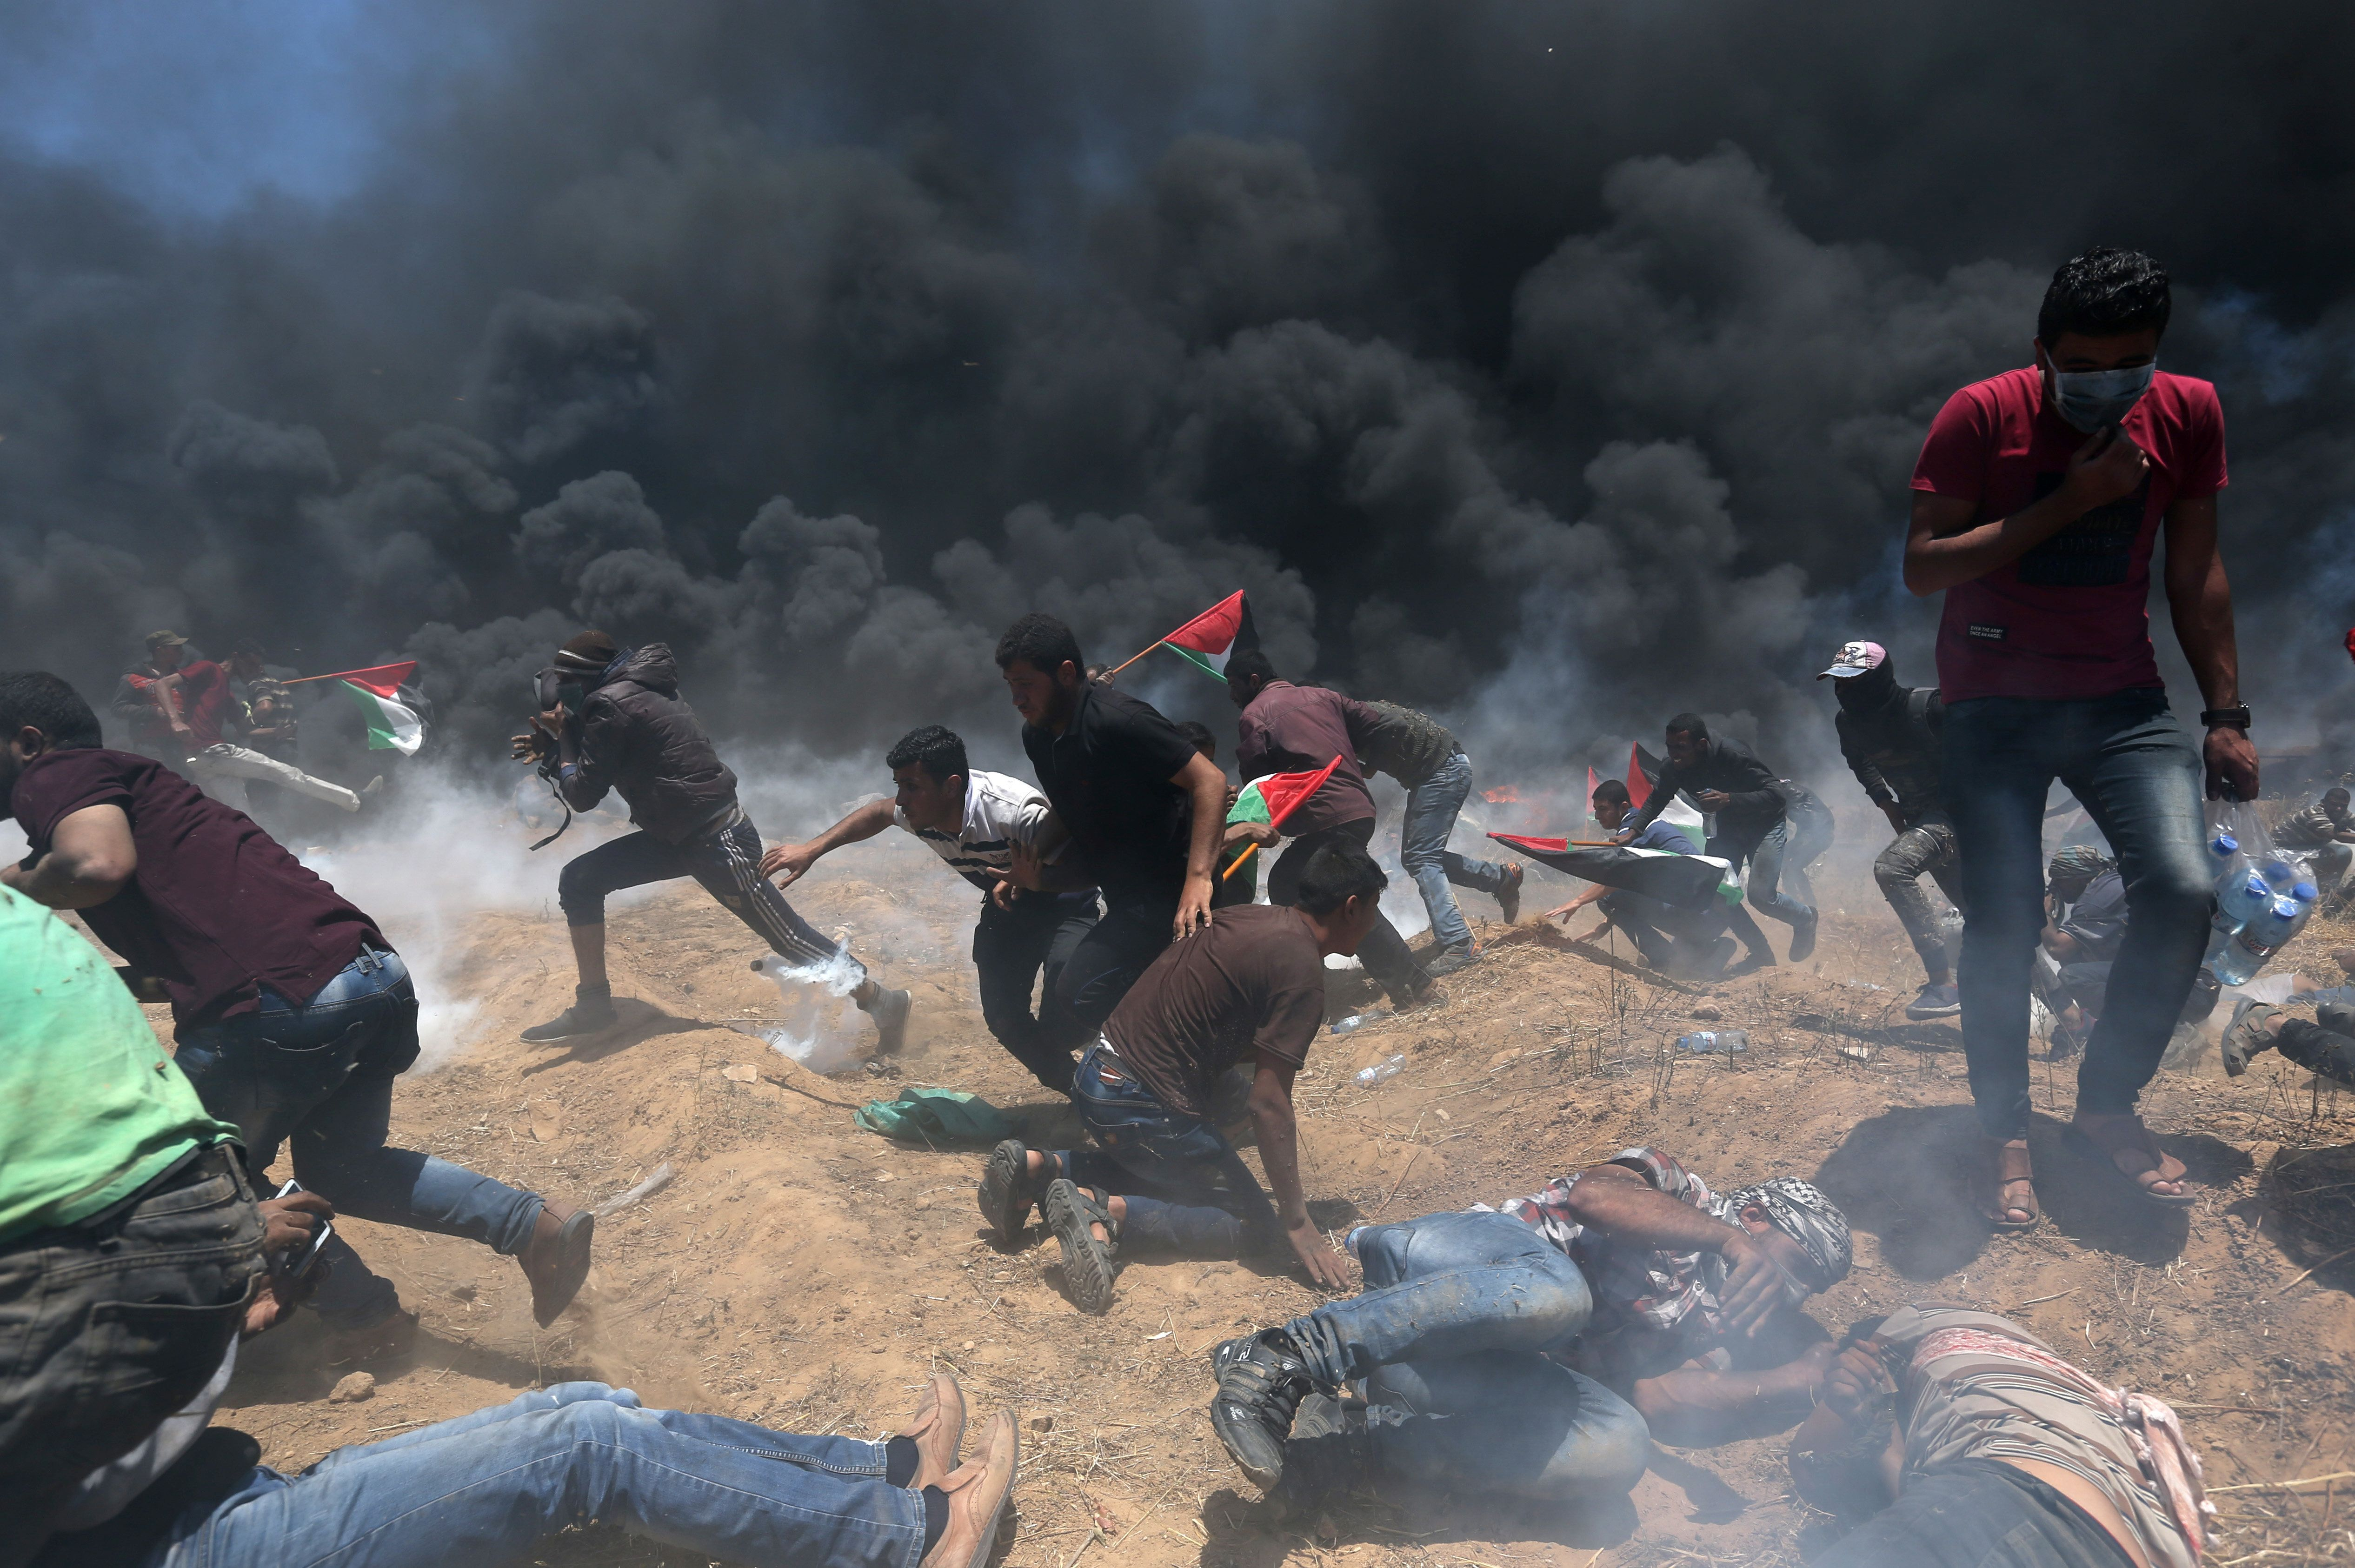 White House Backs Israel's Right to Defend Itself Against Gaza Border Riots